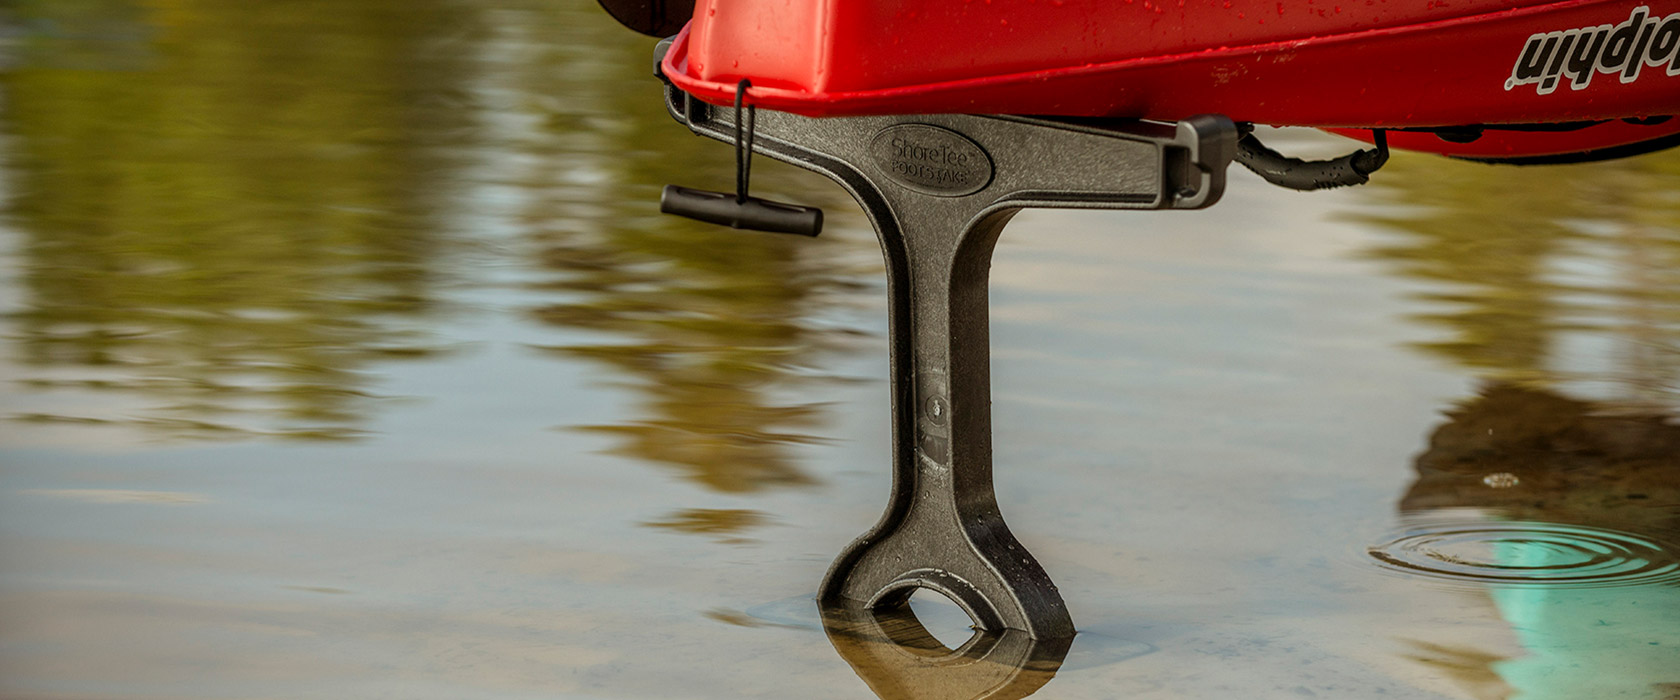 FootStake Portable Kayak Stand Website Design